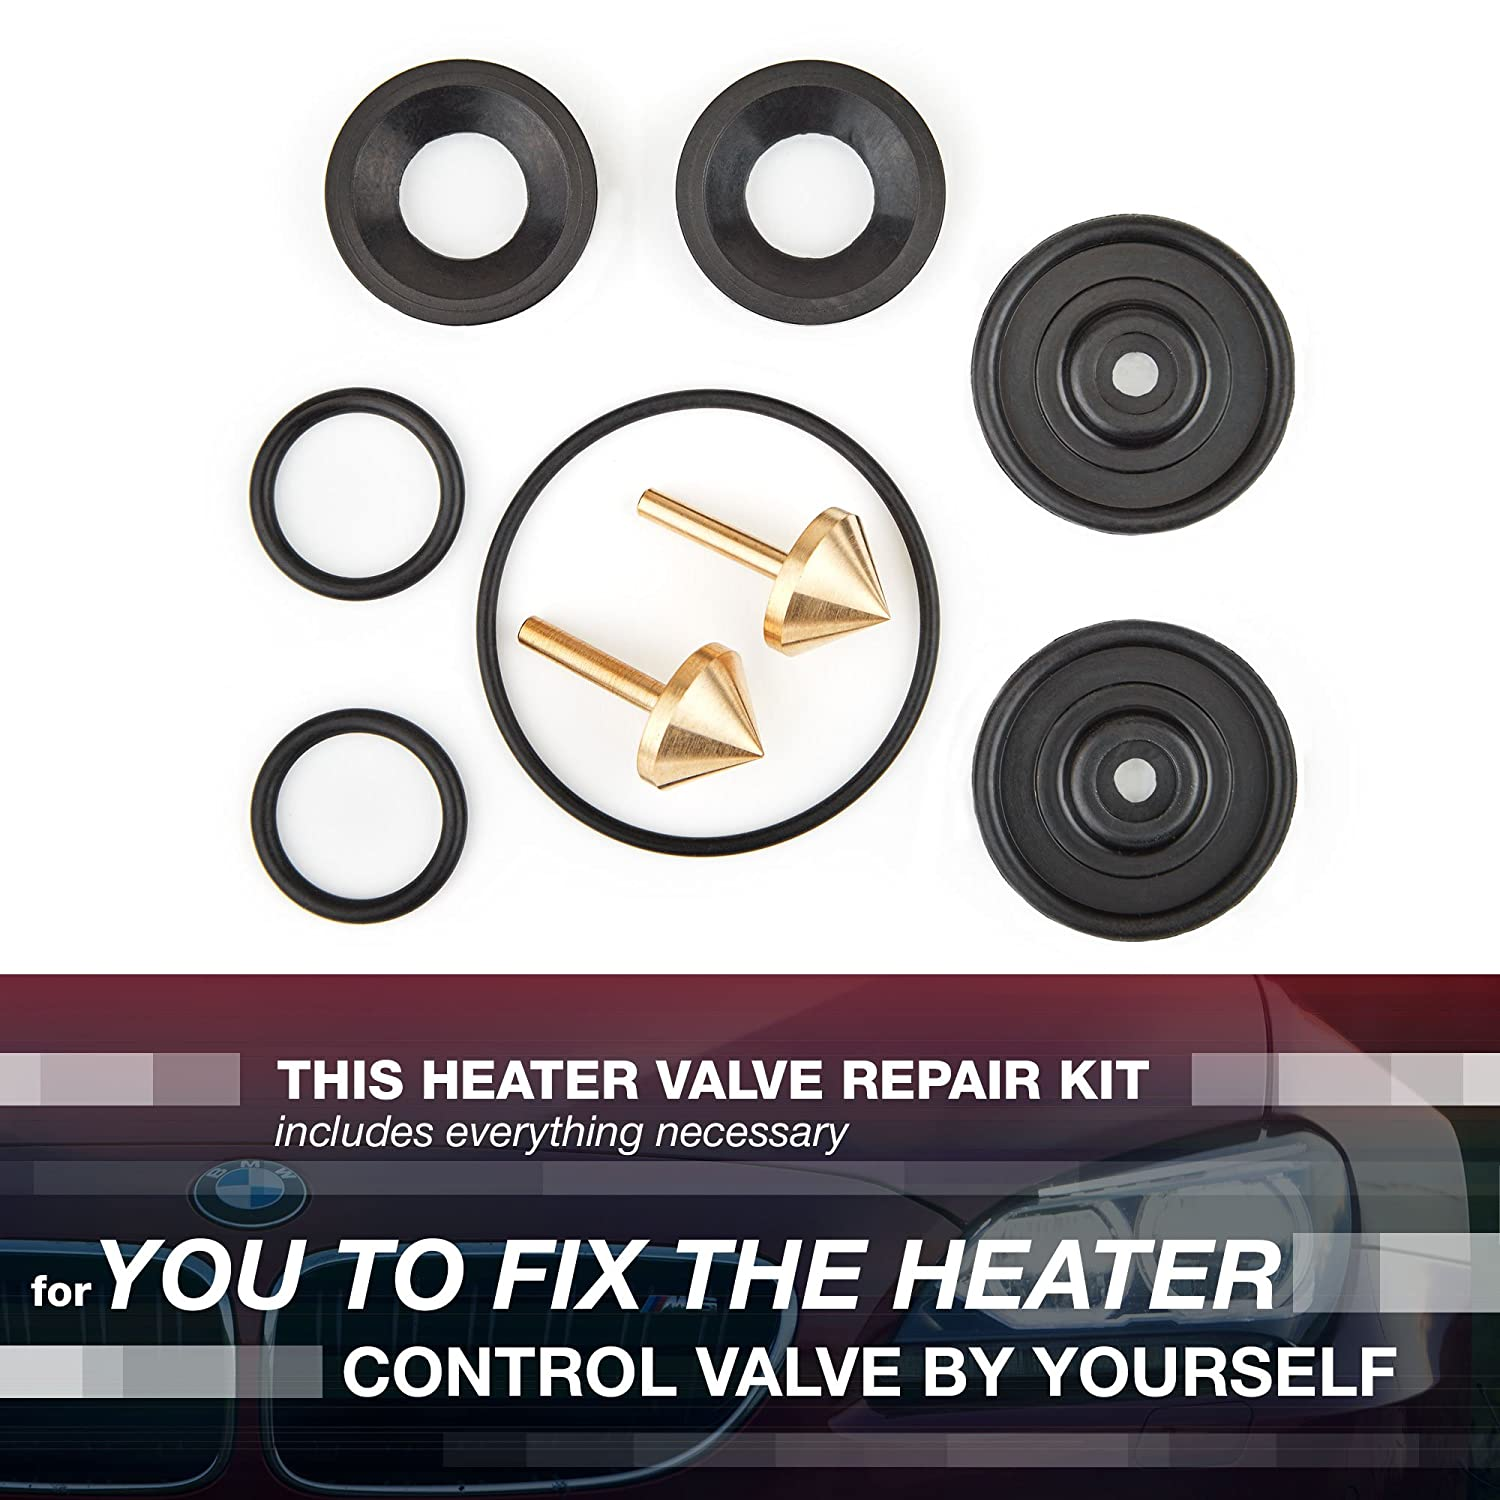 Heater Valve Repair Kit Compatible with BMW Cars - Set of Heater Repair  Parts - No Need to Buy a New Valve, Suitable for Self-Repair E39, E38, E53,